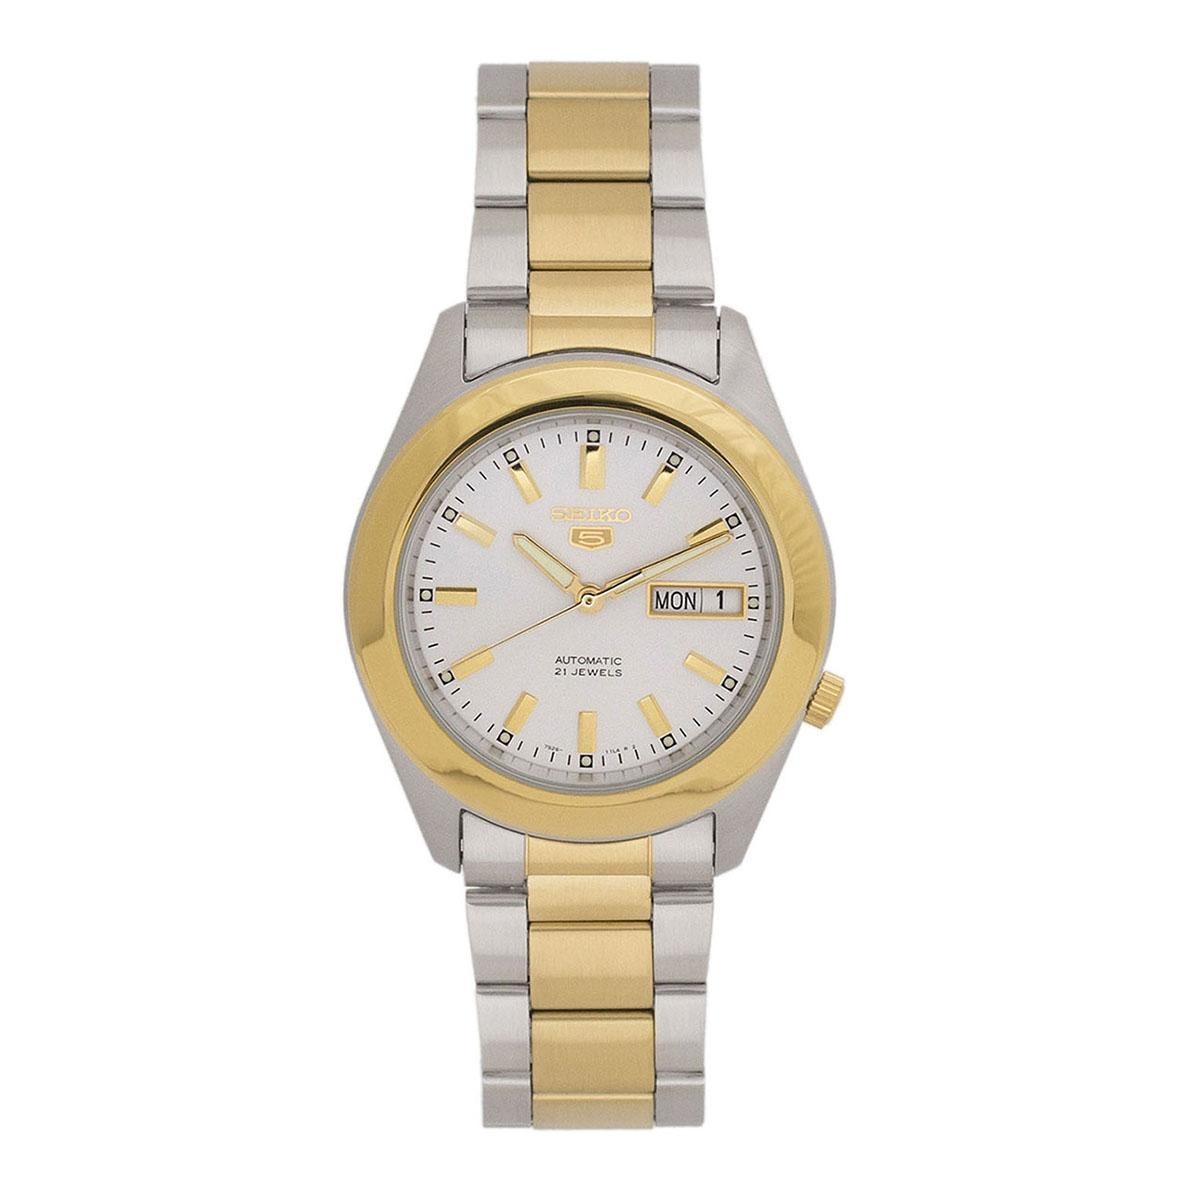 Compare Prices For Seiko Watch 5 Automatic Multicolored Stainless Steel Case Two Tone Stainless Steel Bracelet Mens Snkm70K1